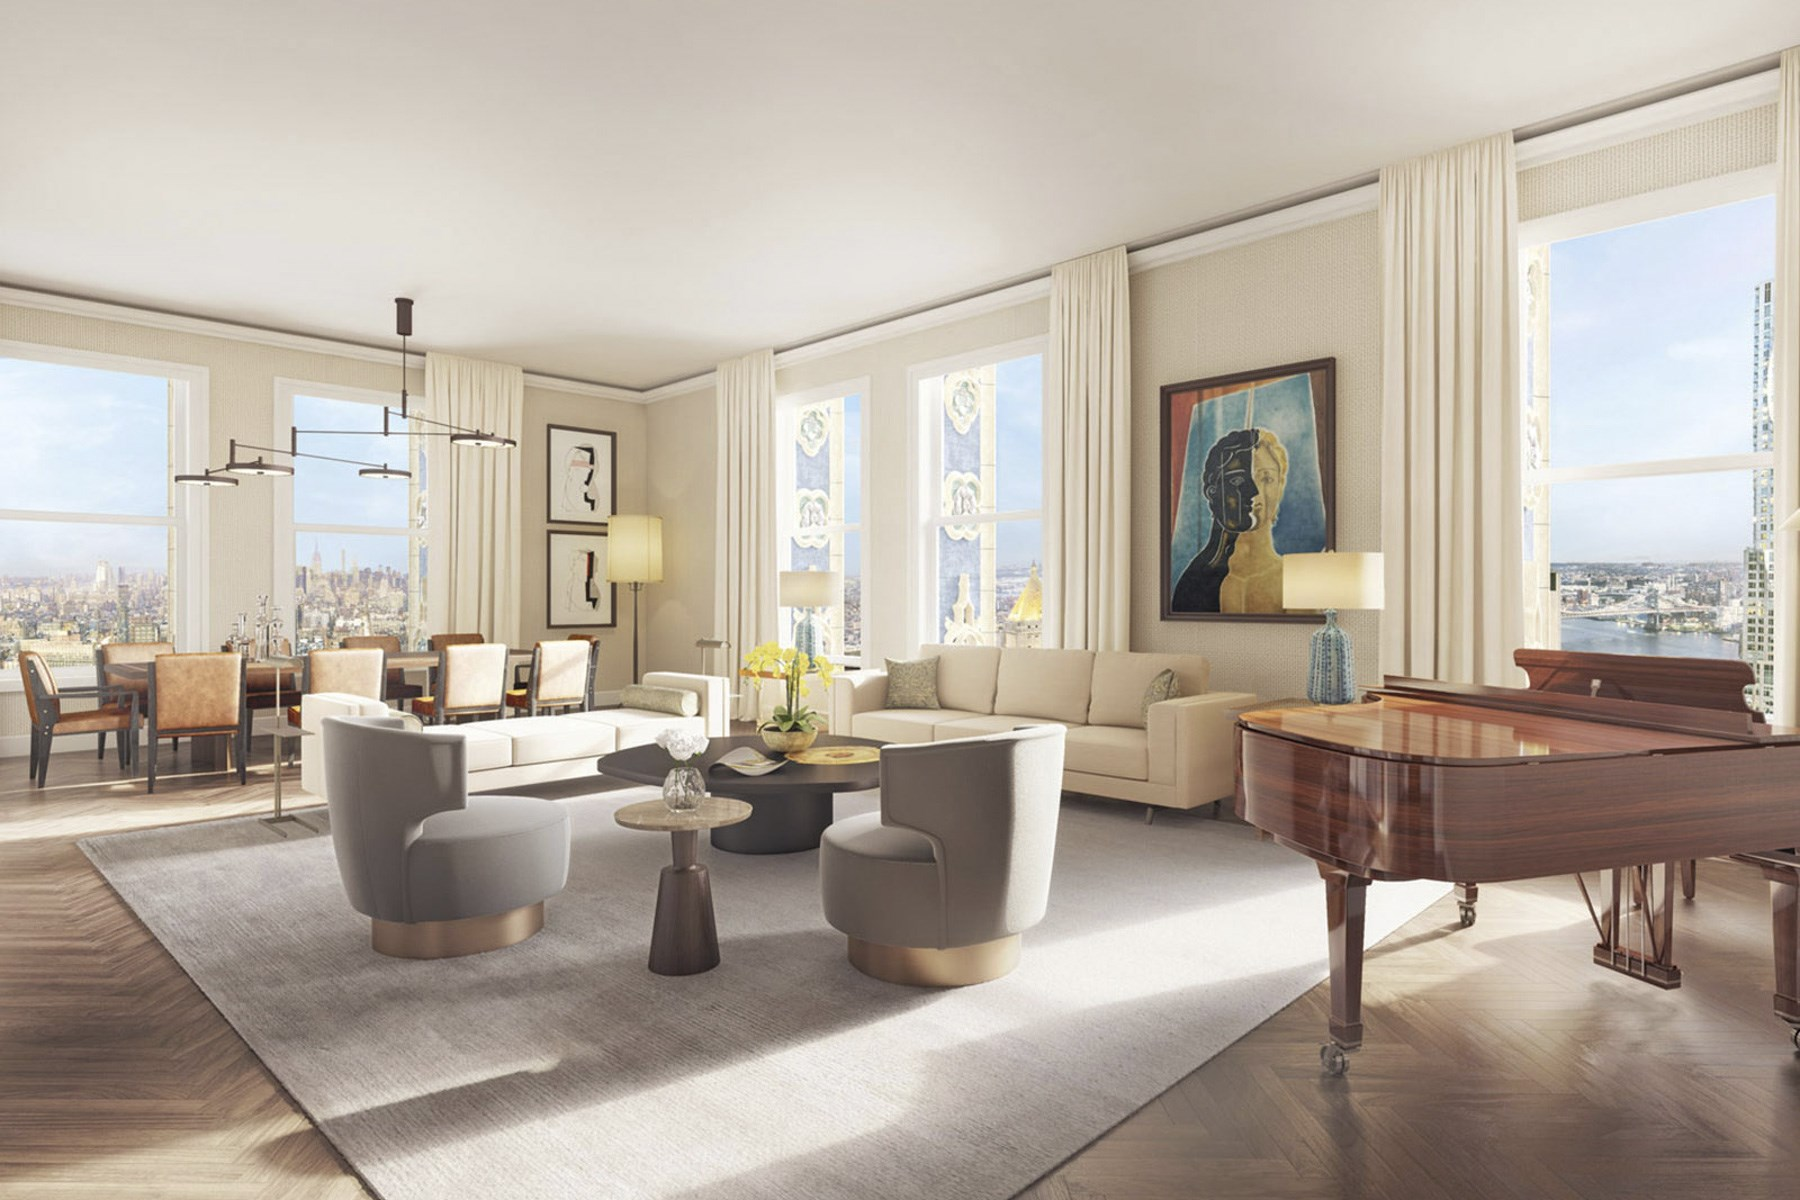 Condominio per Vendita alle ore The Woolworth Tower Residences - 40AB 2 Park Place Apt 40AB Tribeca, New York, New York, 10007 Stati Uniti